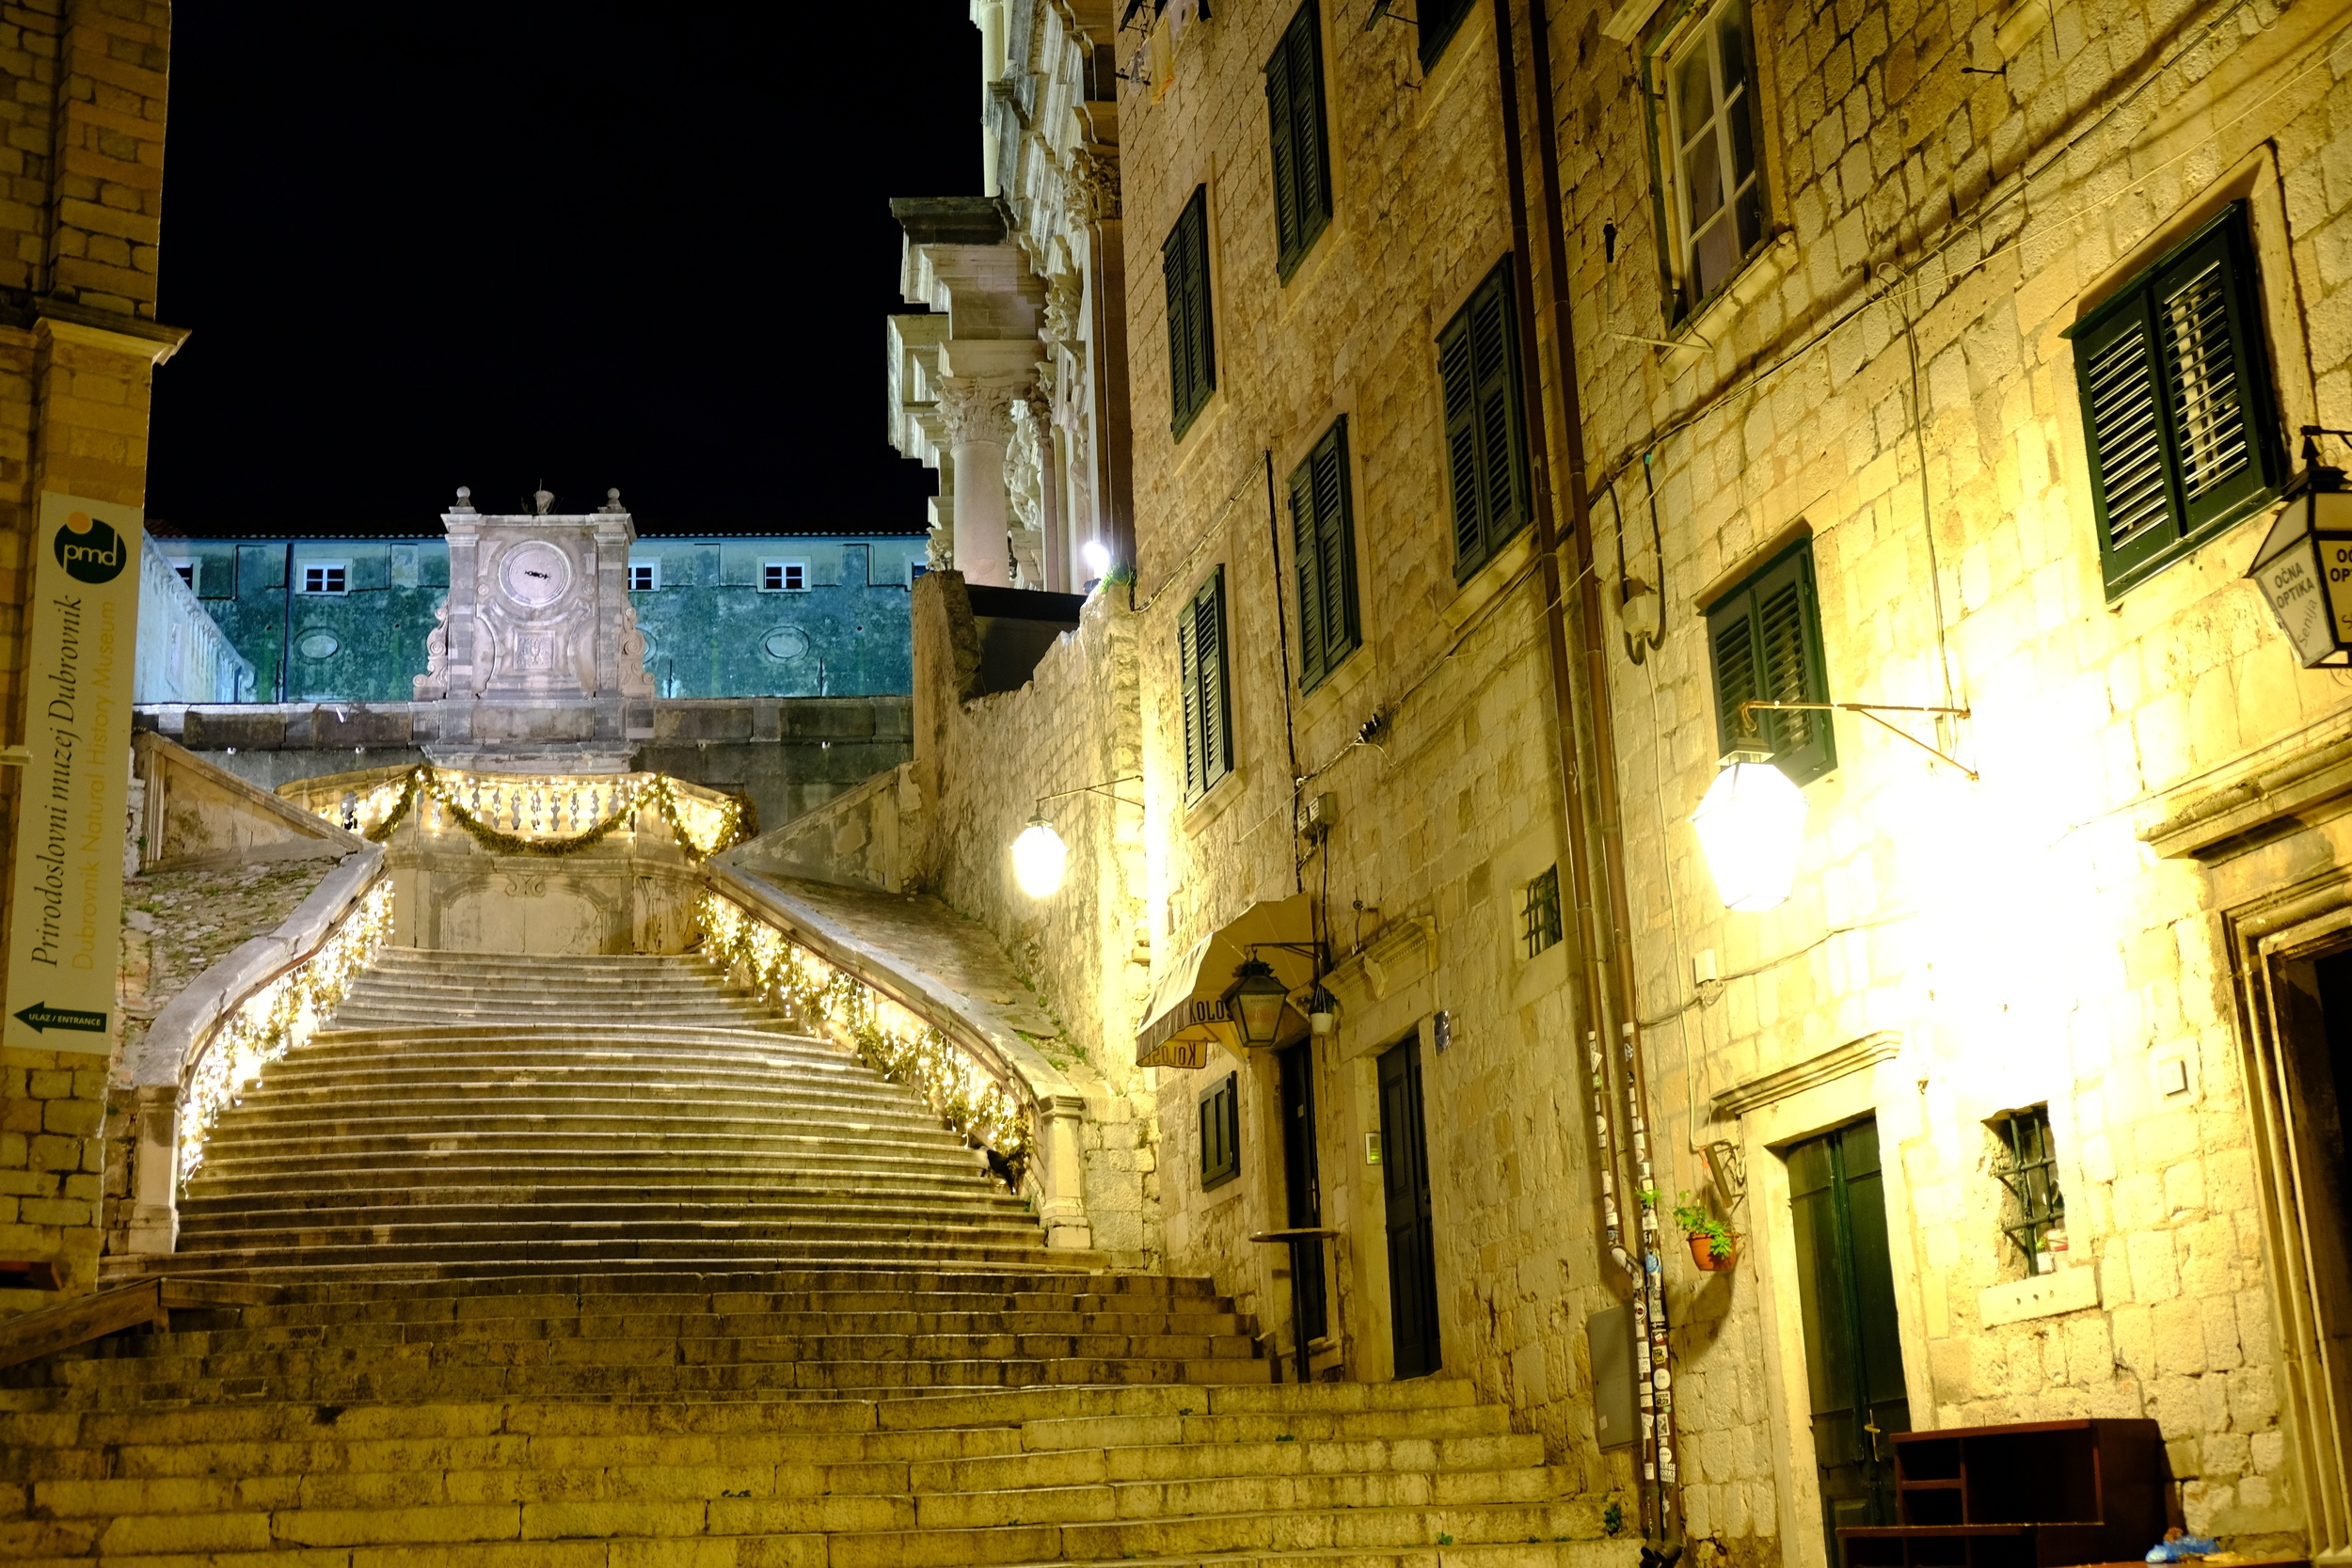 nightlife in dubrovnik